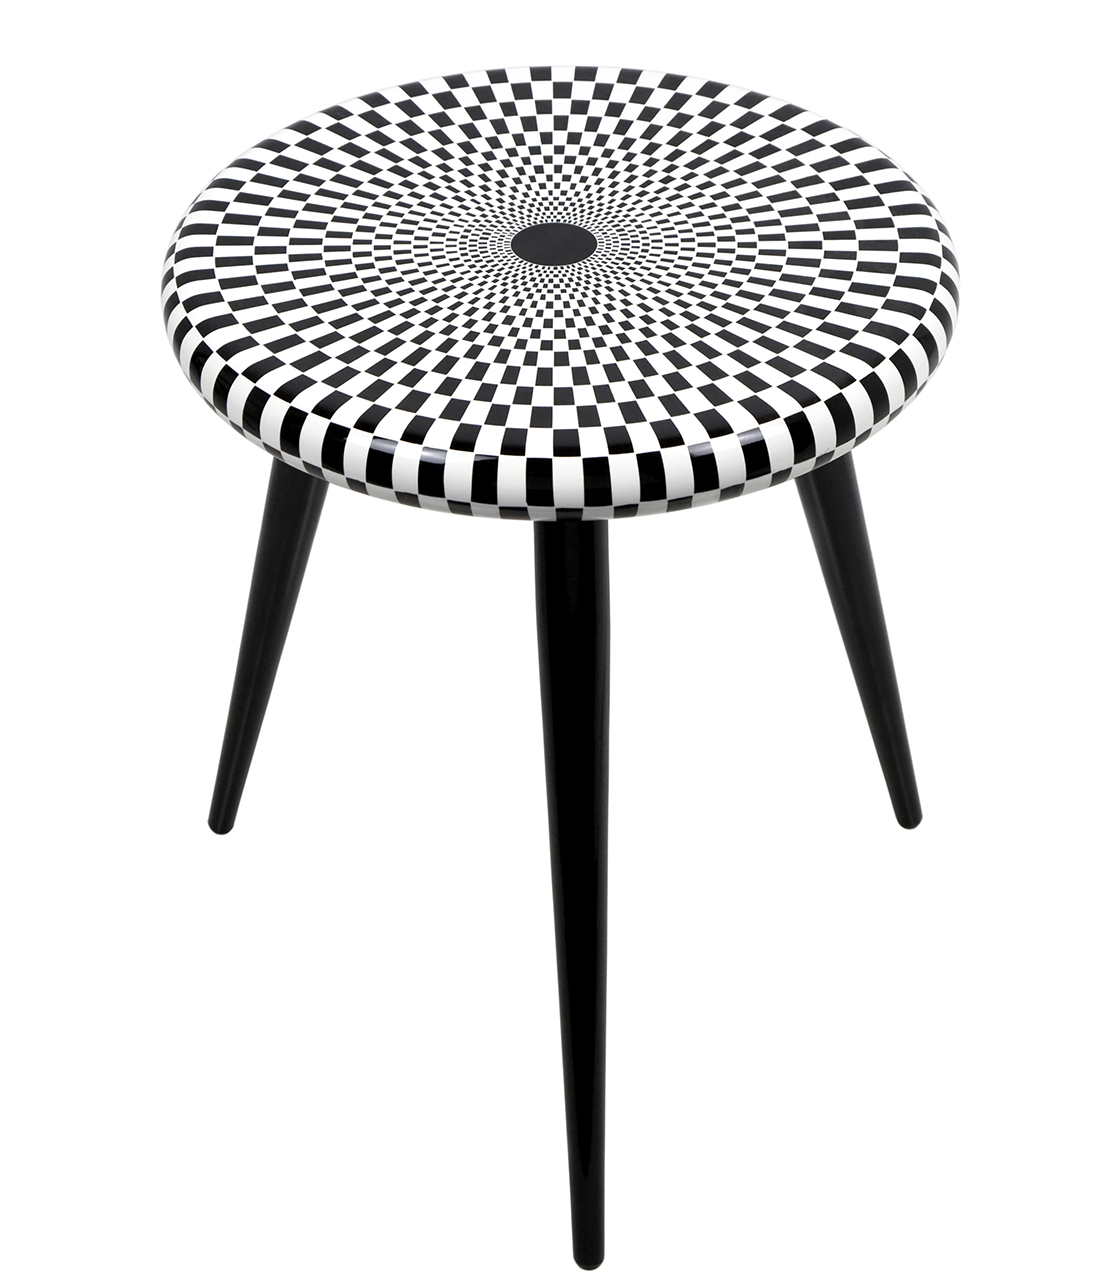 Egocentrismo, design by Barnaba Fornasetti, 2005.